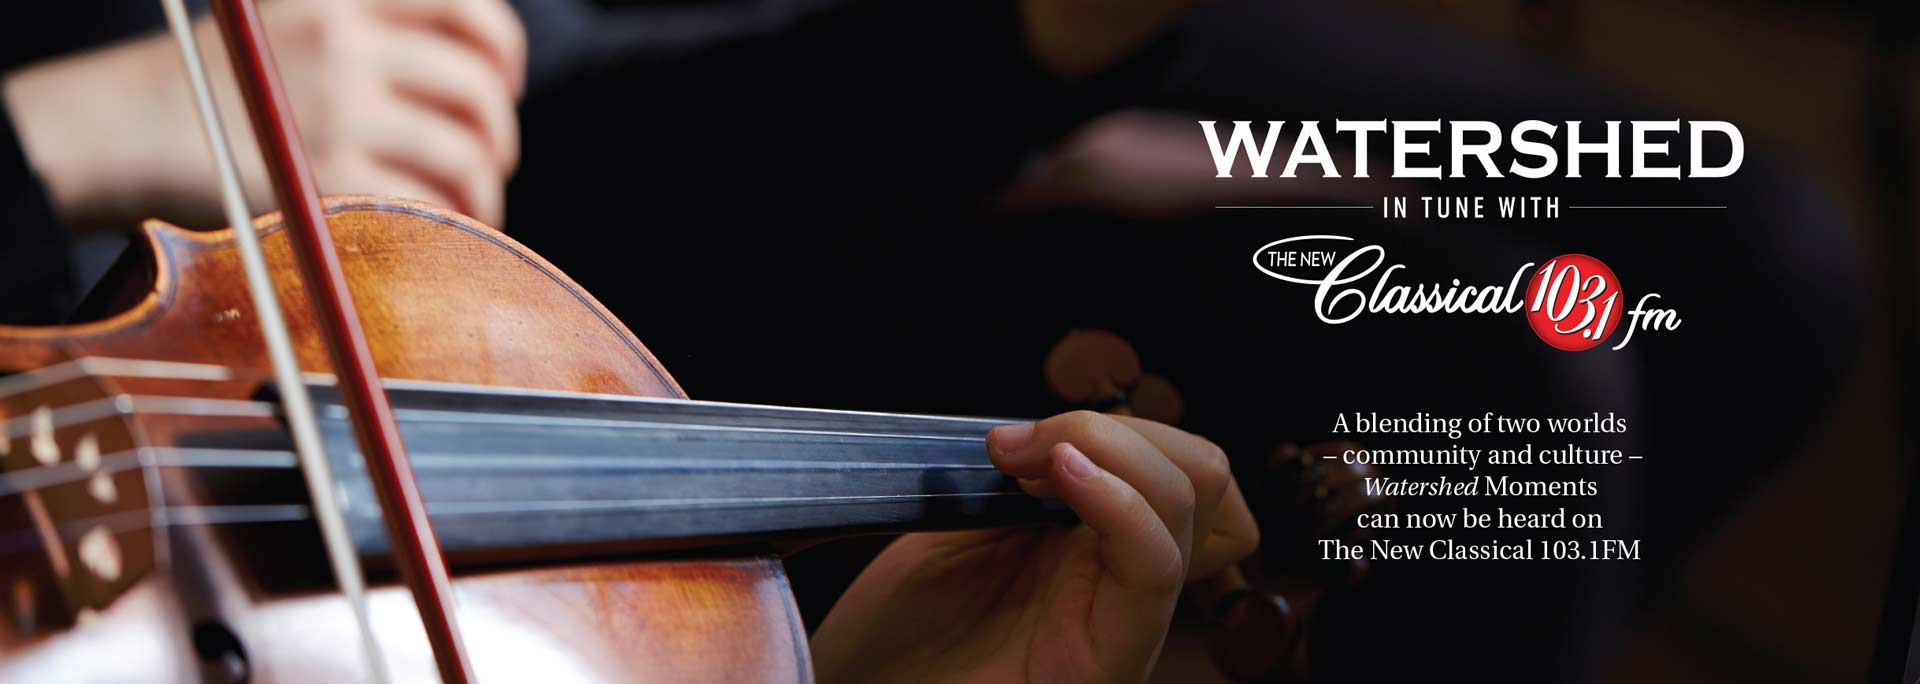 Watershed is in tune with the new Classical 103.1 FM. A blending of two worlds - community and culture - Watershed Moments can now be heard on The New Classical 103.1 FM